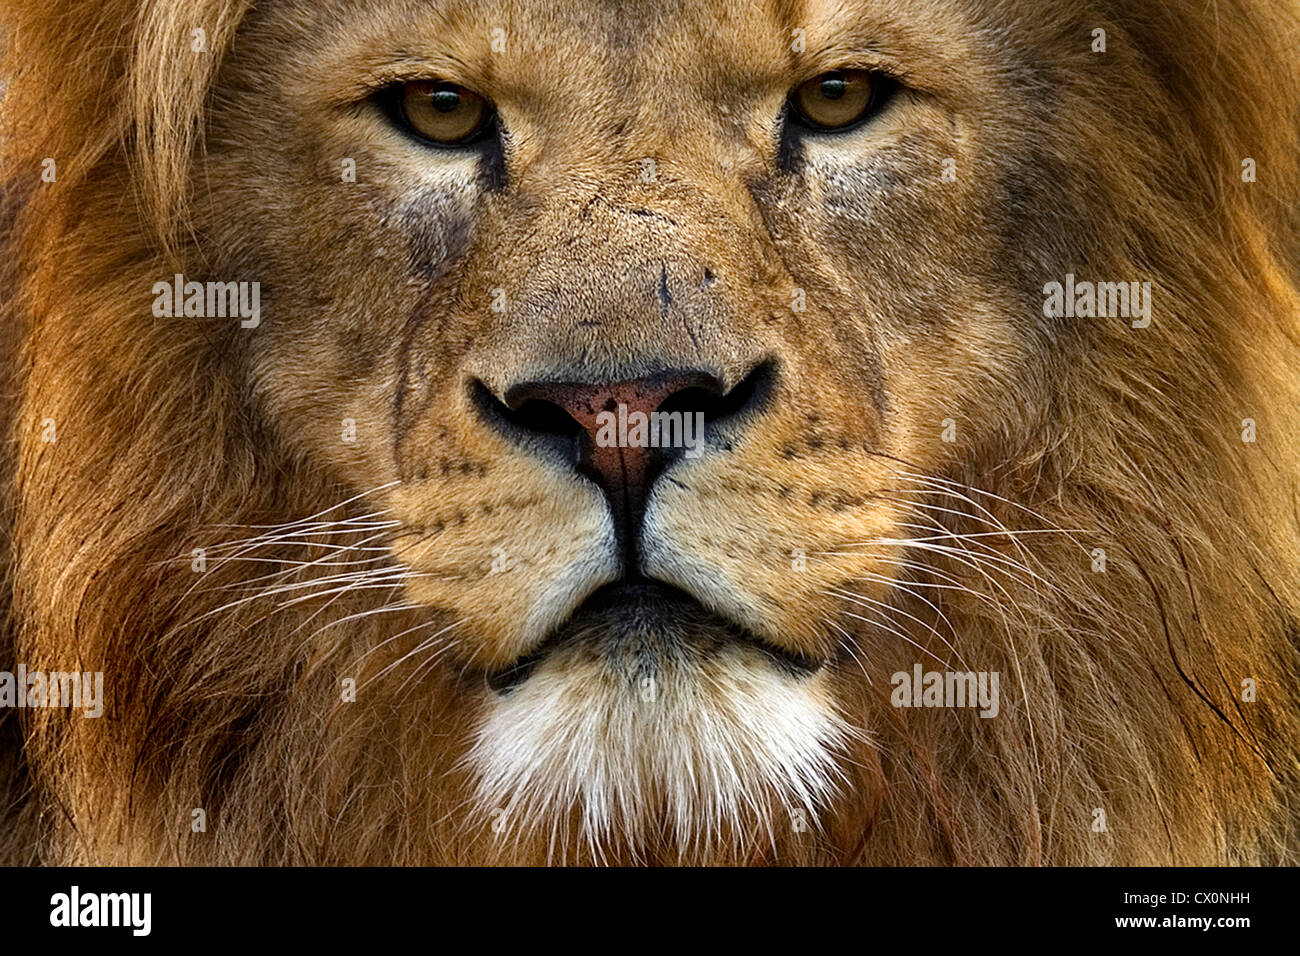 8k Animal Wallpaper Download: Close Up Portrait Of Male Lions Face Stock Photo: 50418749